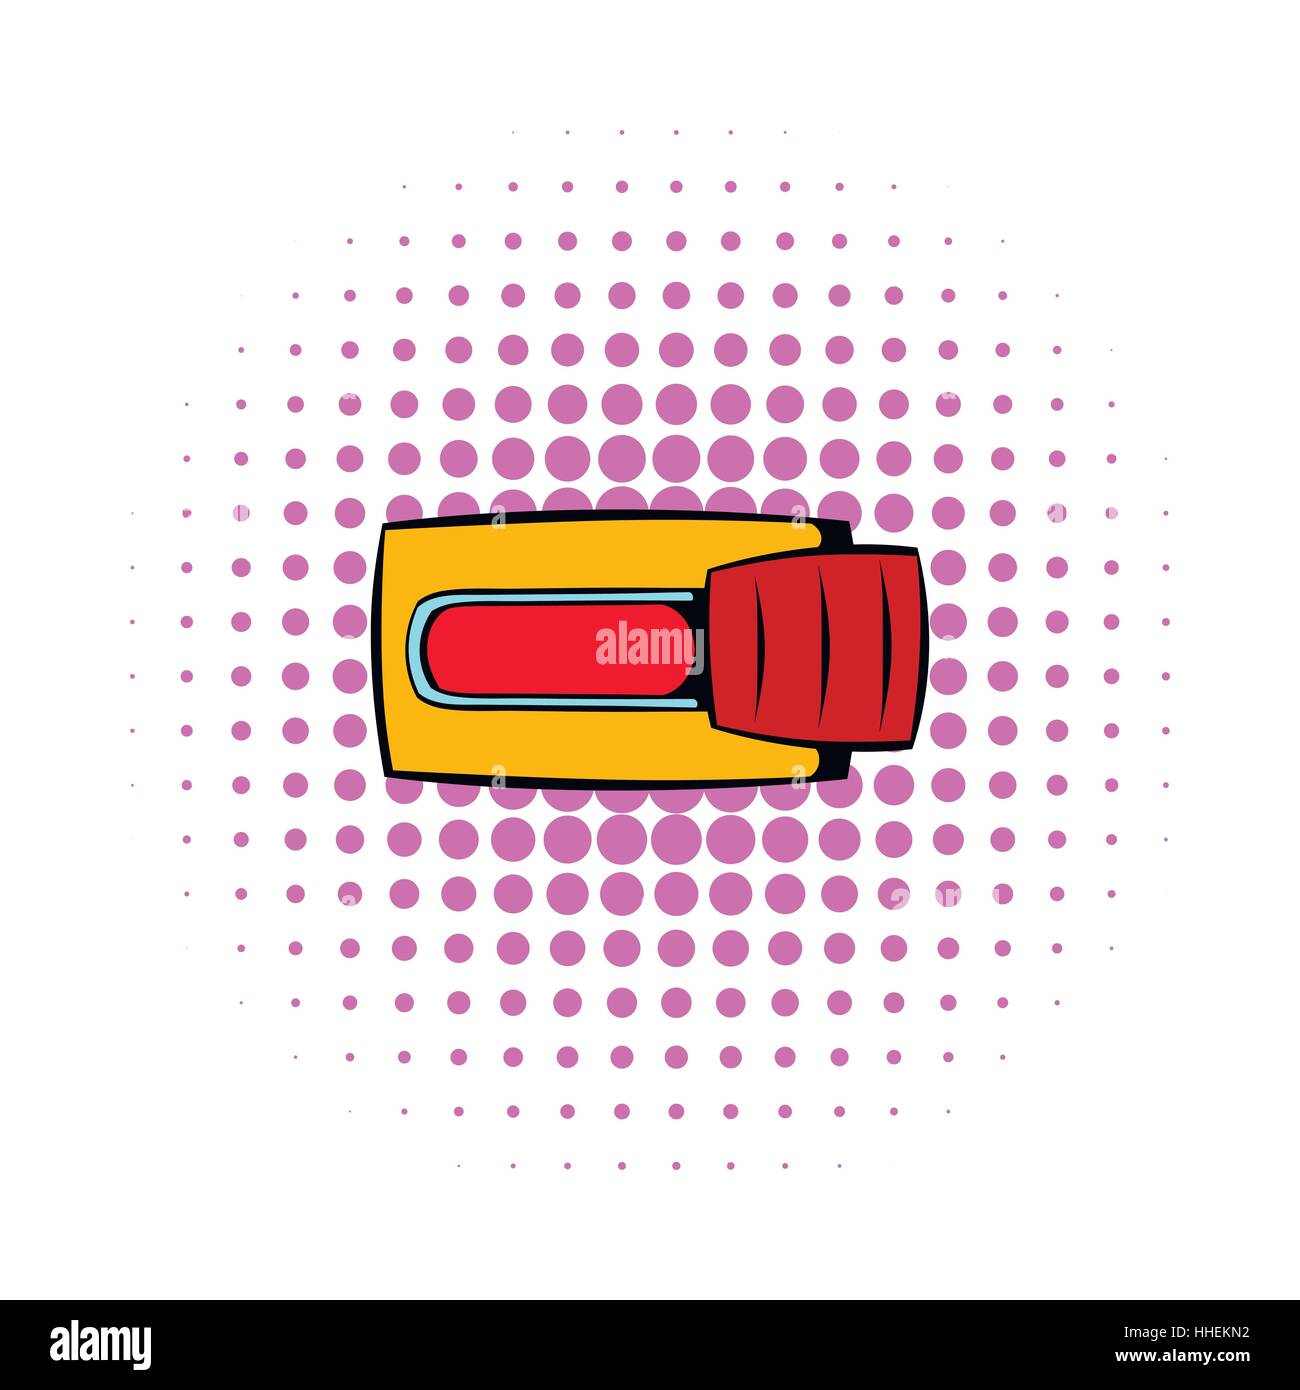 Toggle switch in No position icon, comics style - Stock Image